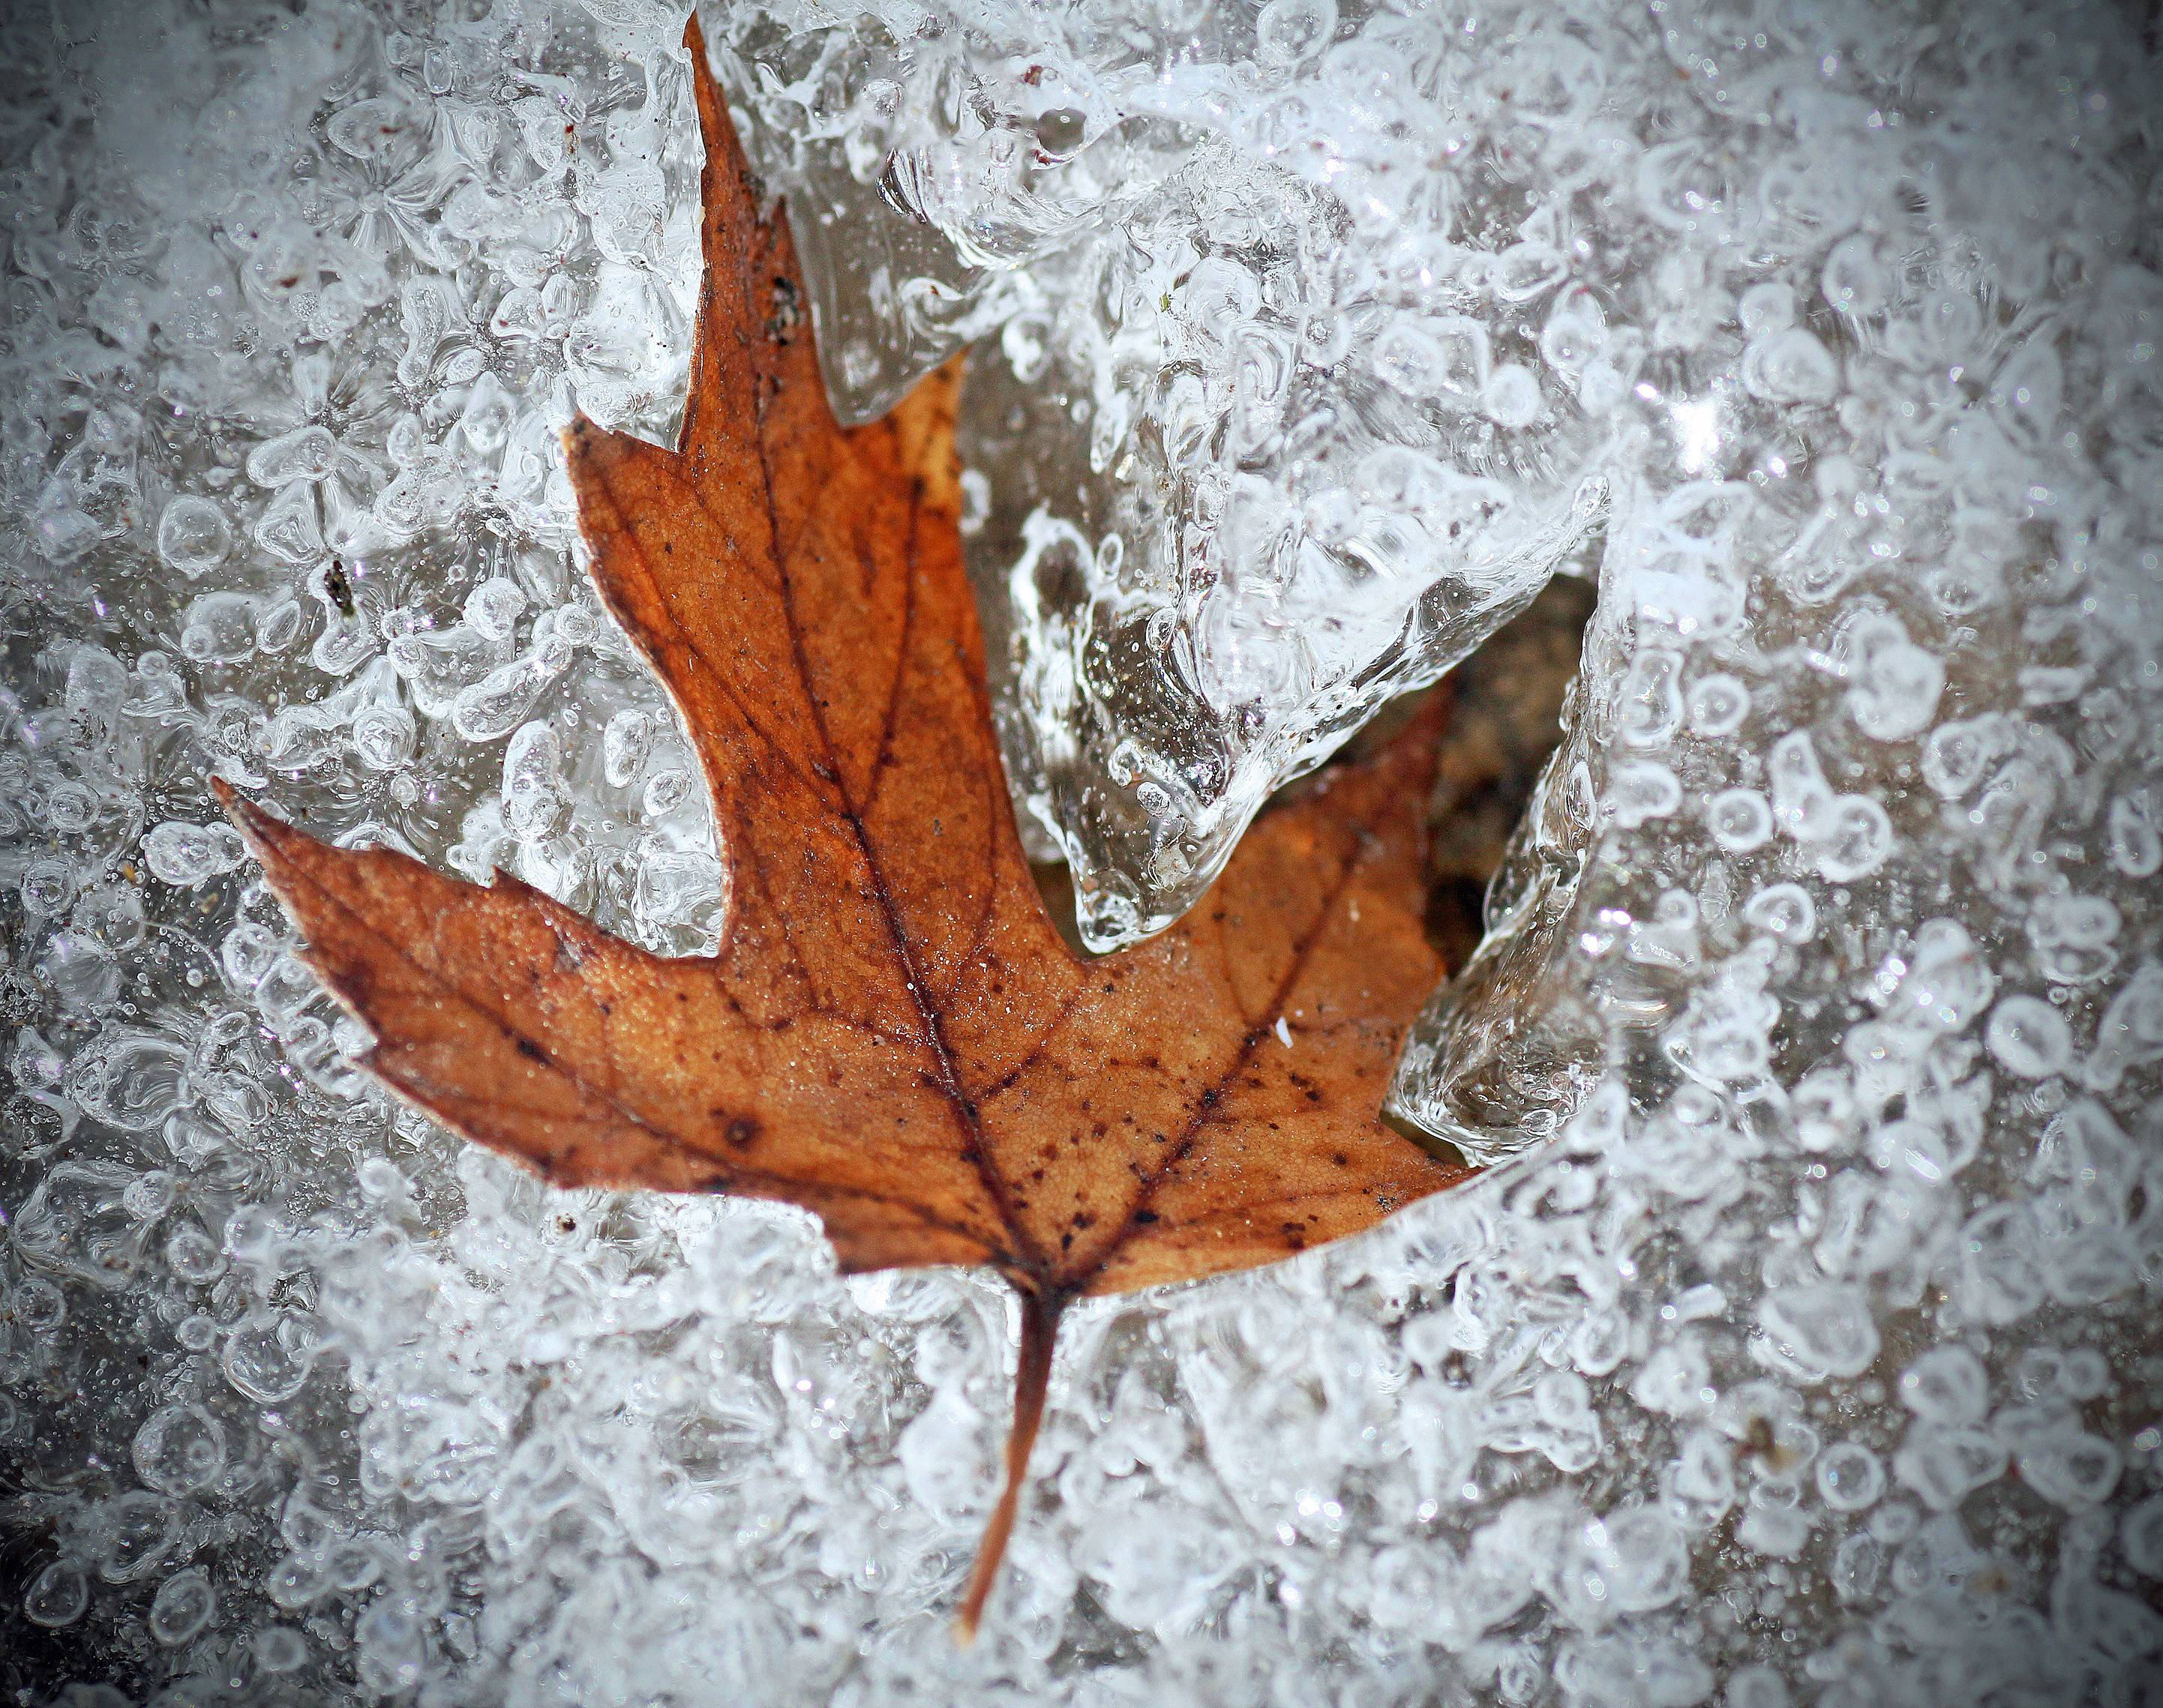 The other day, I was searching for some interesting subjects for photography among the melting snow in the yard. I discovered this remnant of fall trapped beneath the icy grip of winter. I used a 1:1 macro lens to capture the rugged textures of the ice and the smooth accents of the decaying leaf.